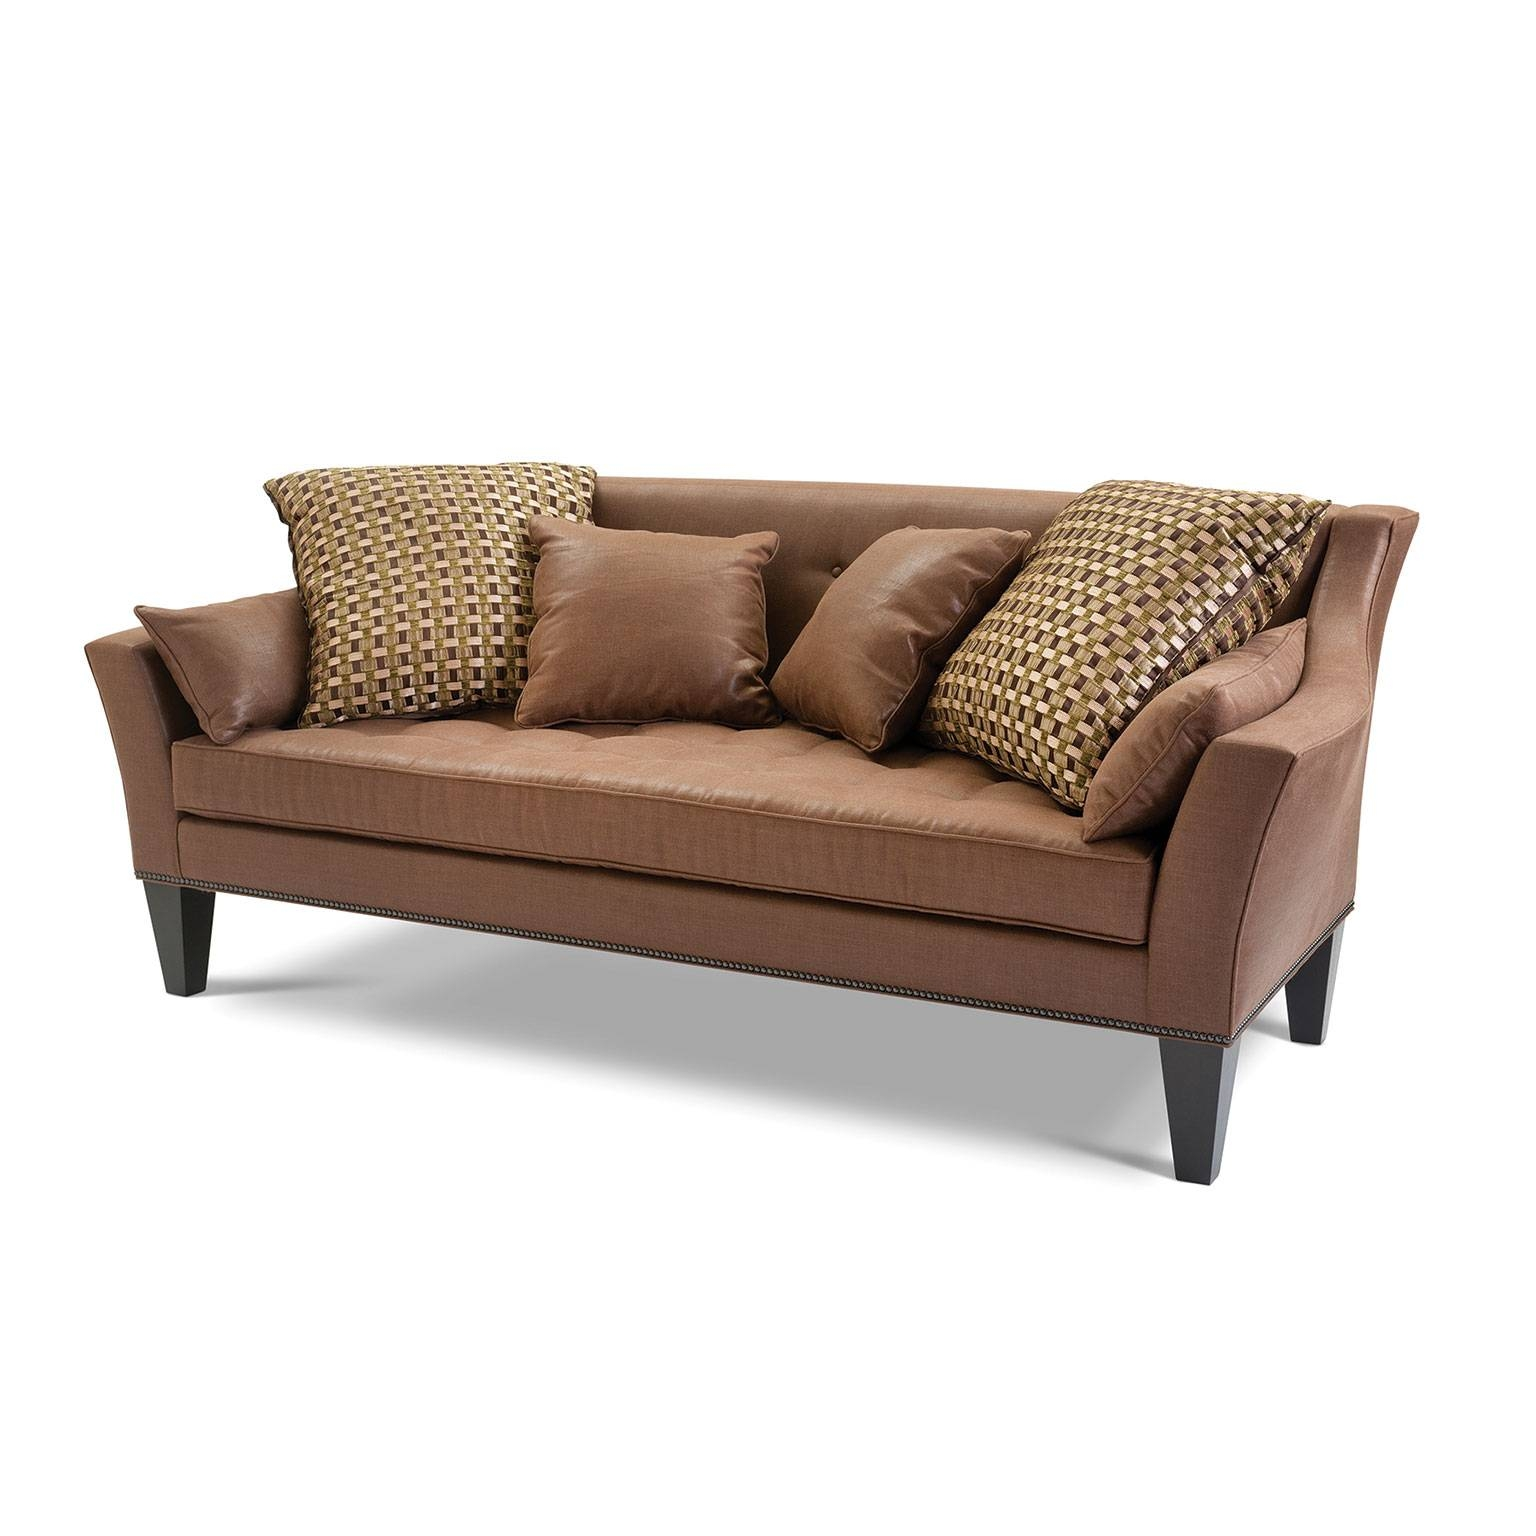 Allan Knightupholstery | Sofas And Sectionals | Palm Beach Sofa On throughout Wood Legs Sofas (Image 2 of 30)